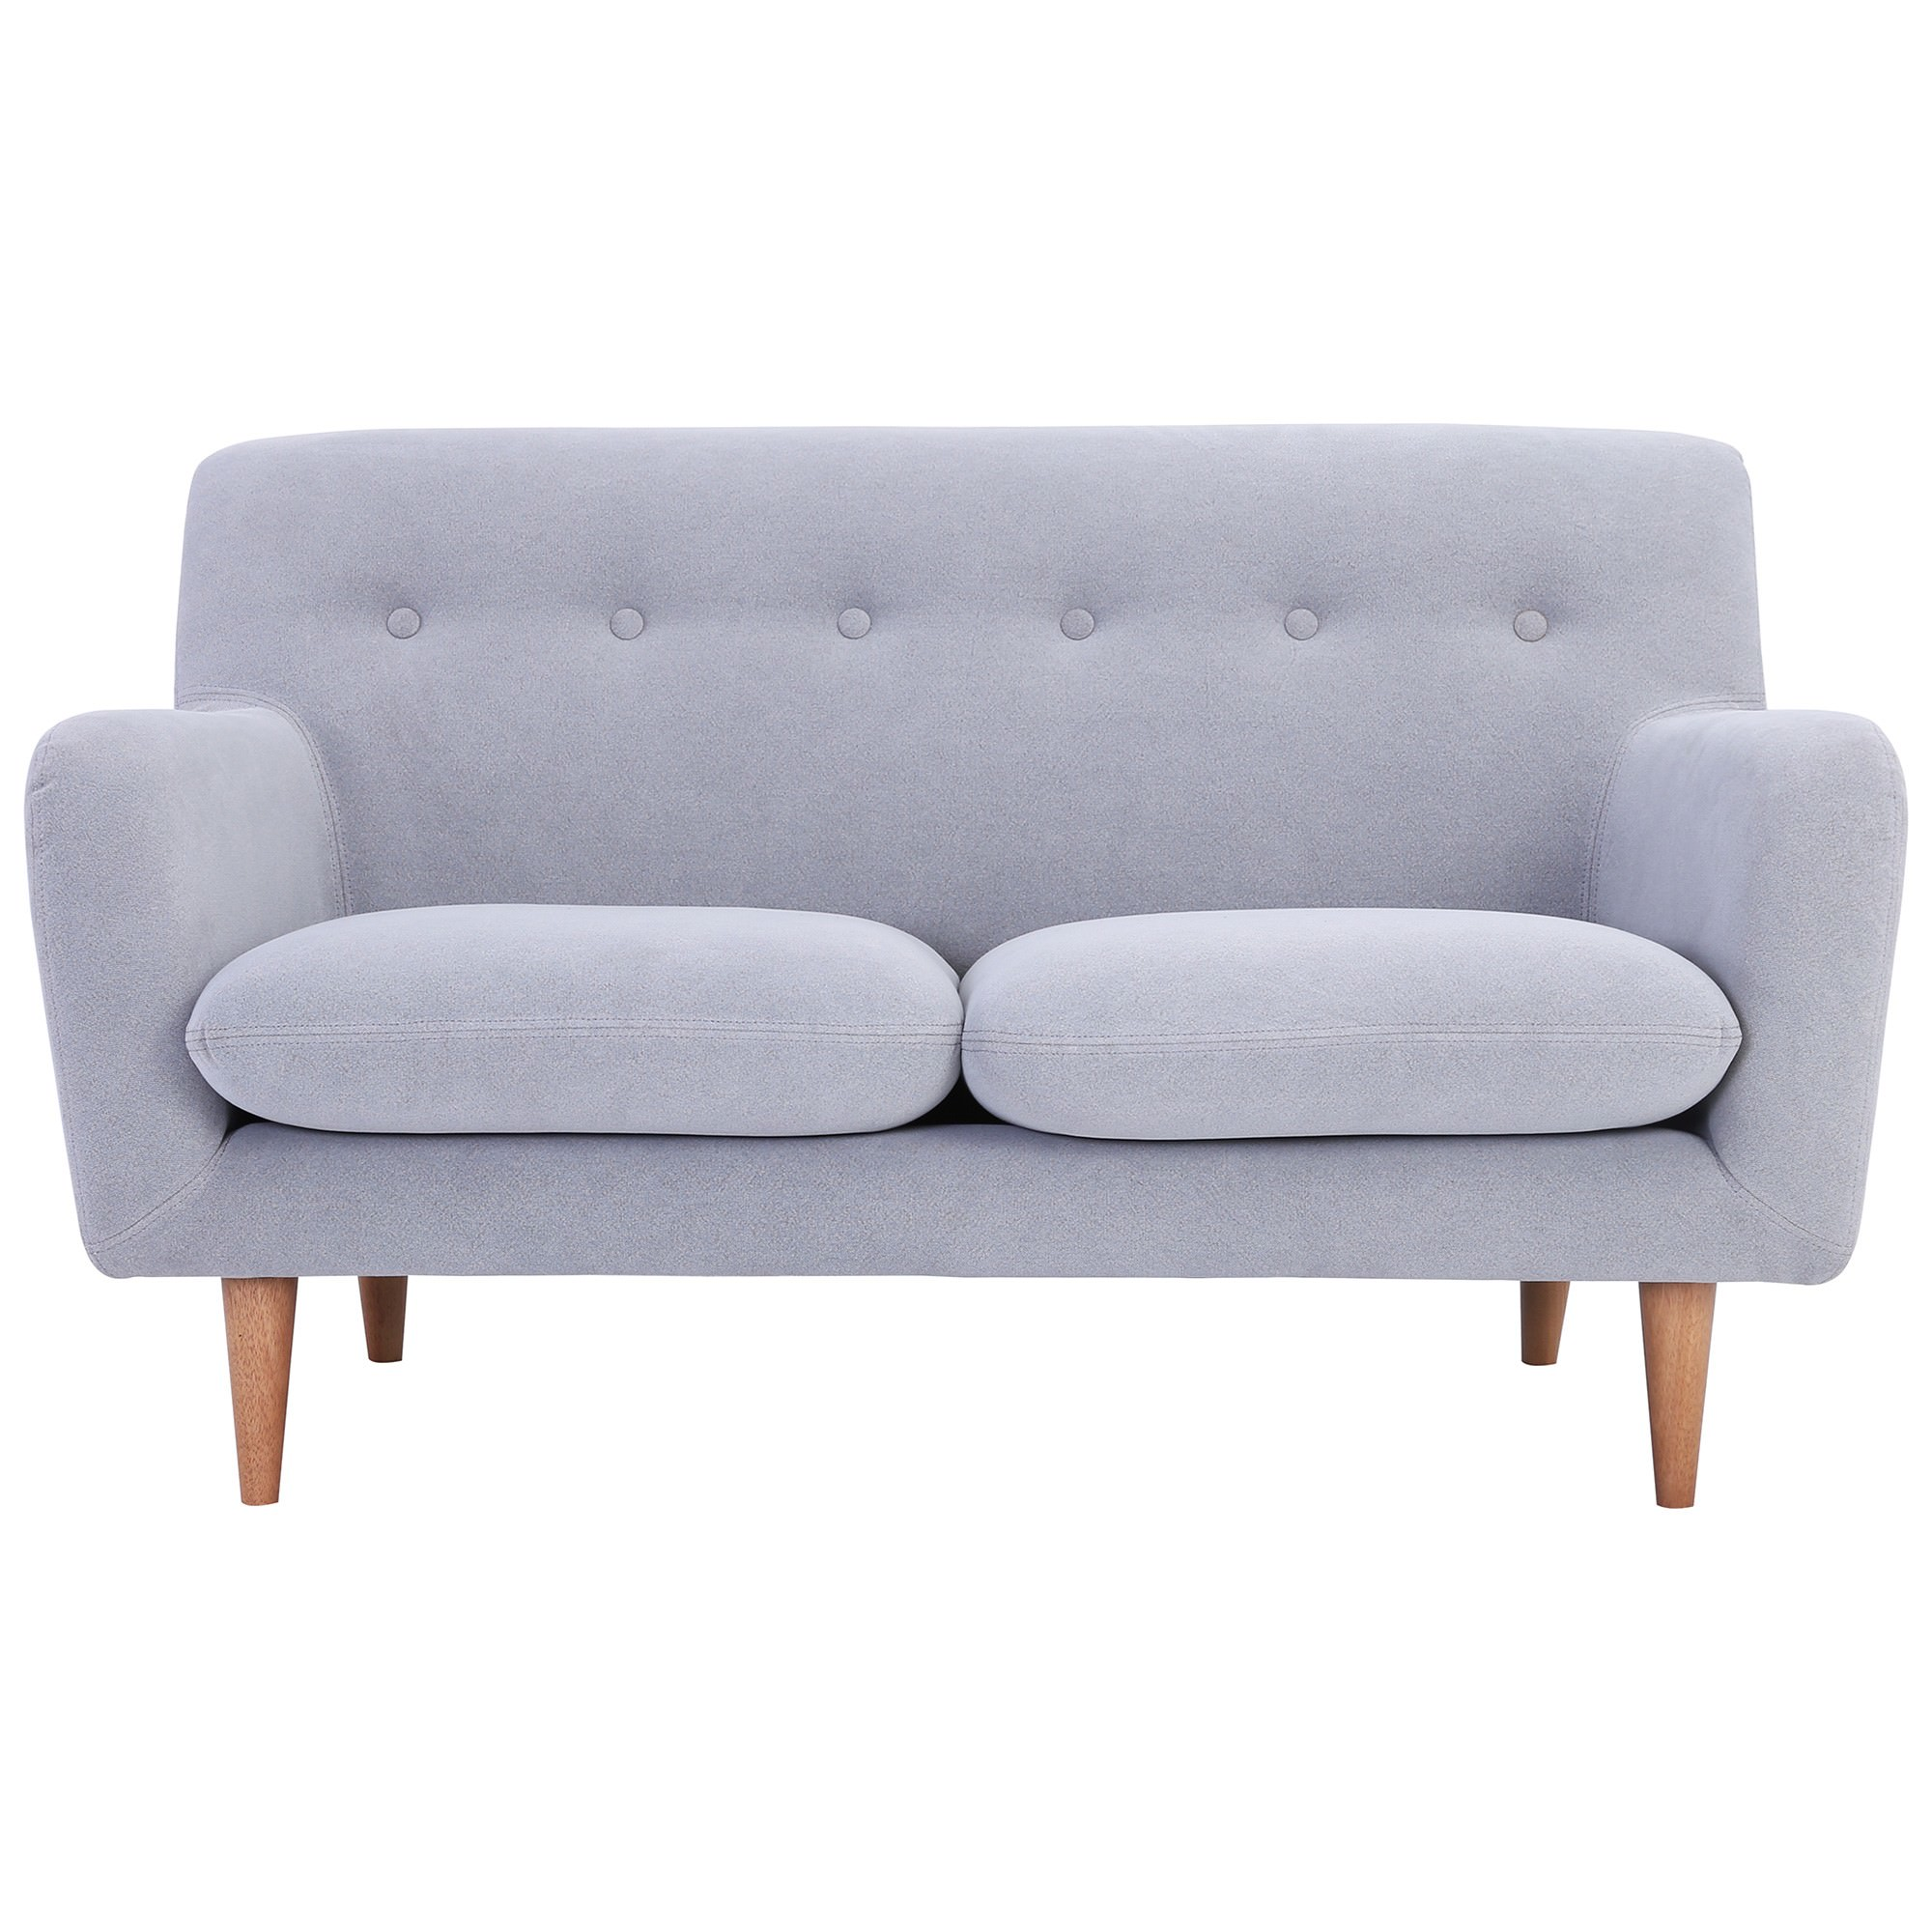 Sportage Fabric Sofa, 2 Seater, Smoke